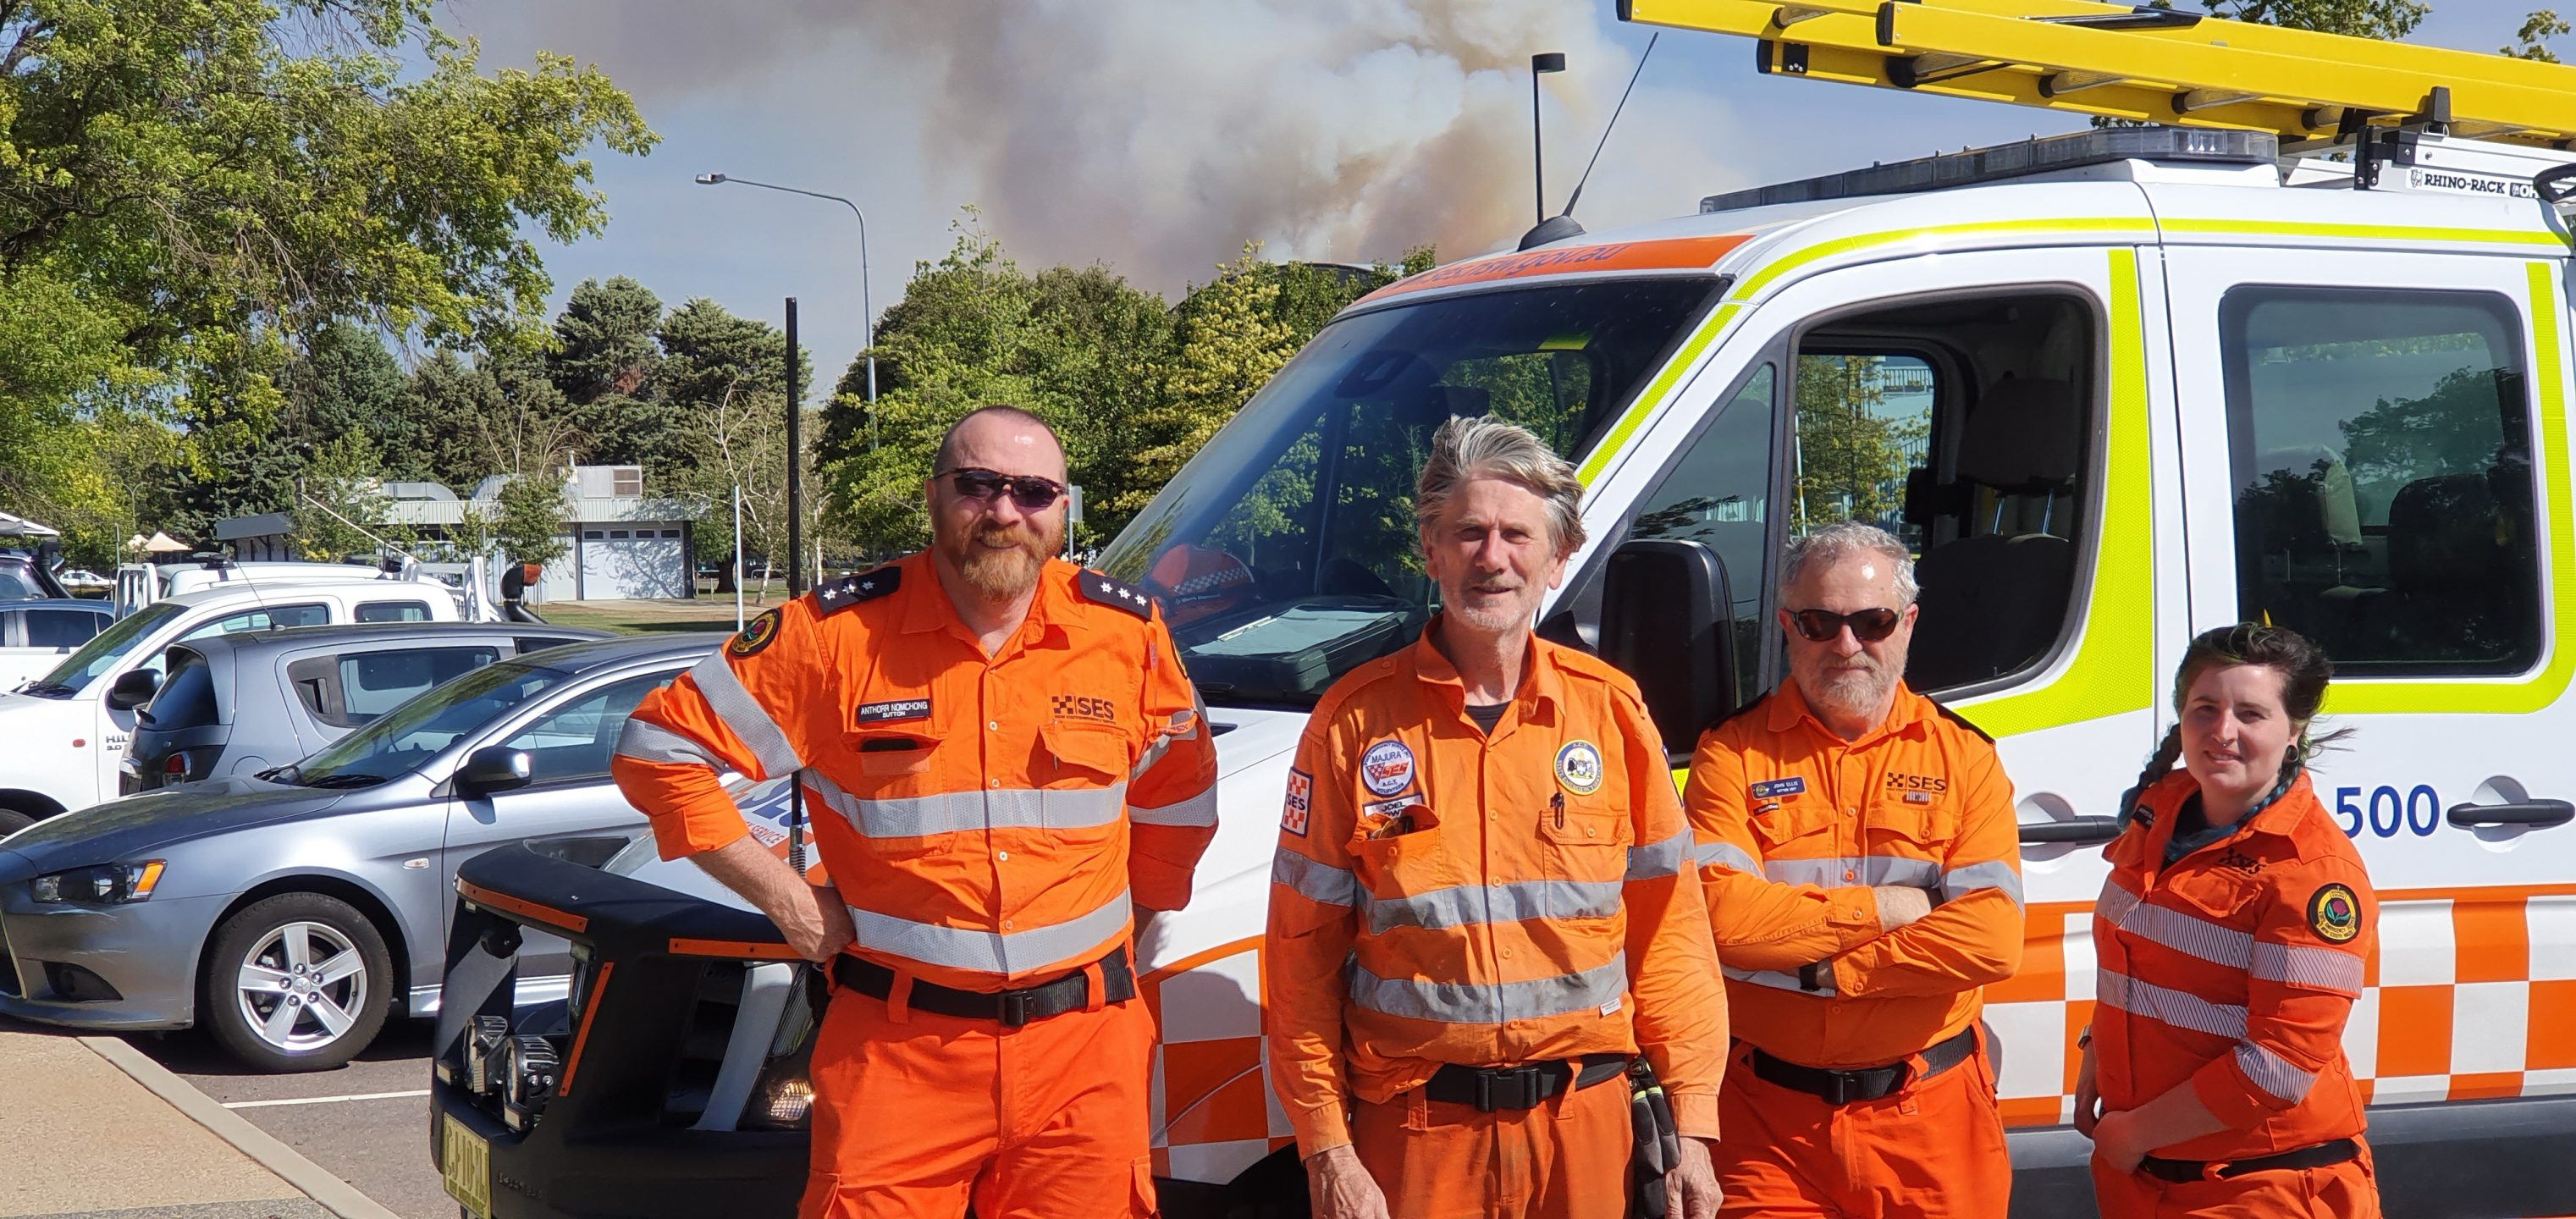 Four SES personnel standing next to an SES van. Smoke in the background